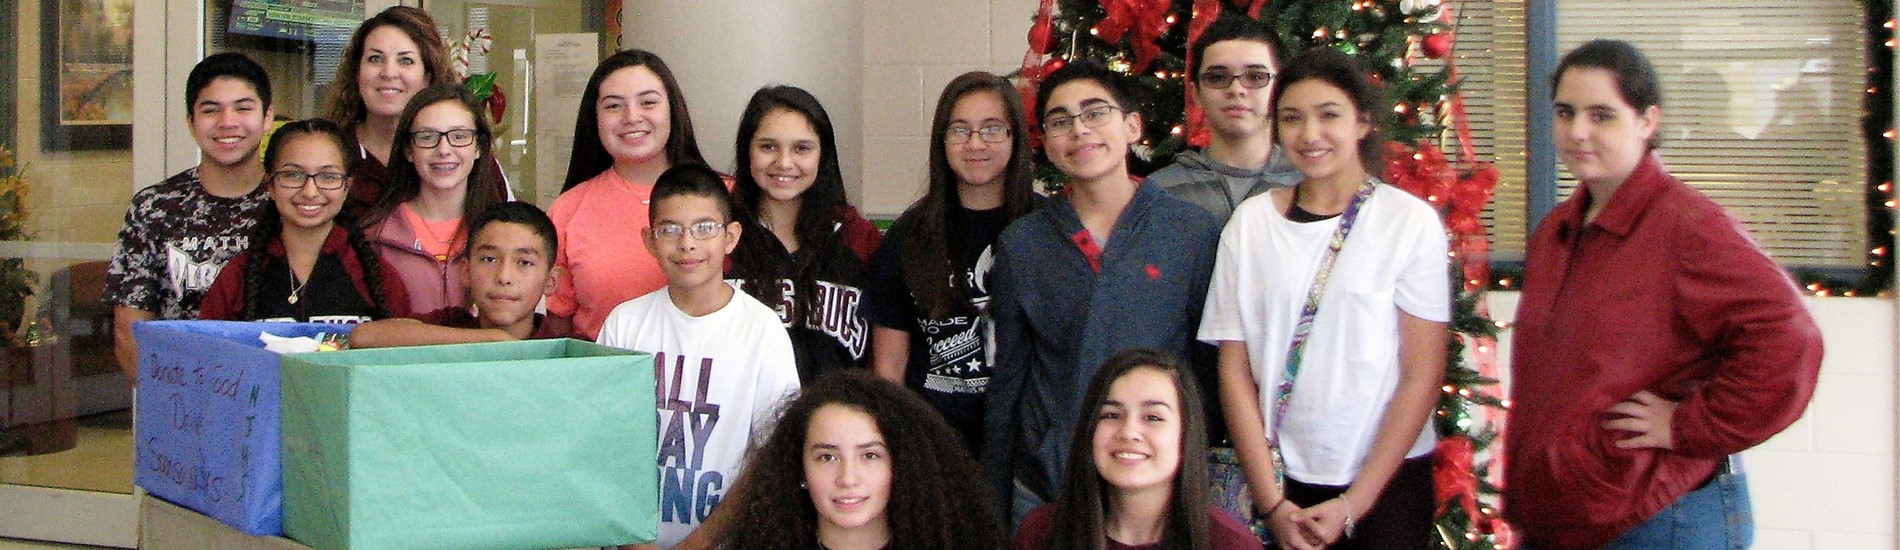 Mathis Middle School Student Council Christmas photo